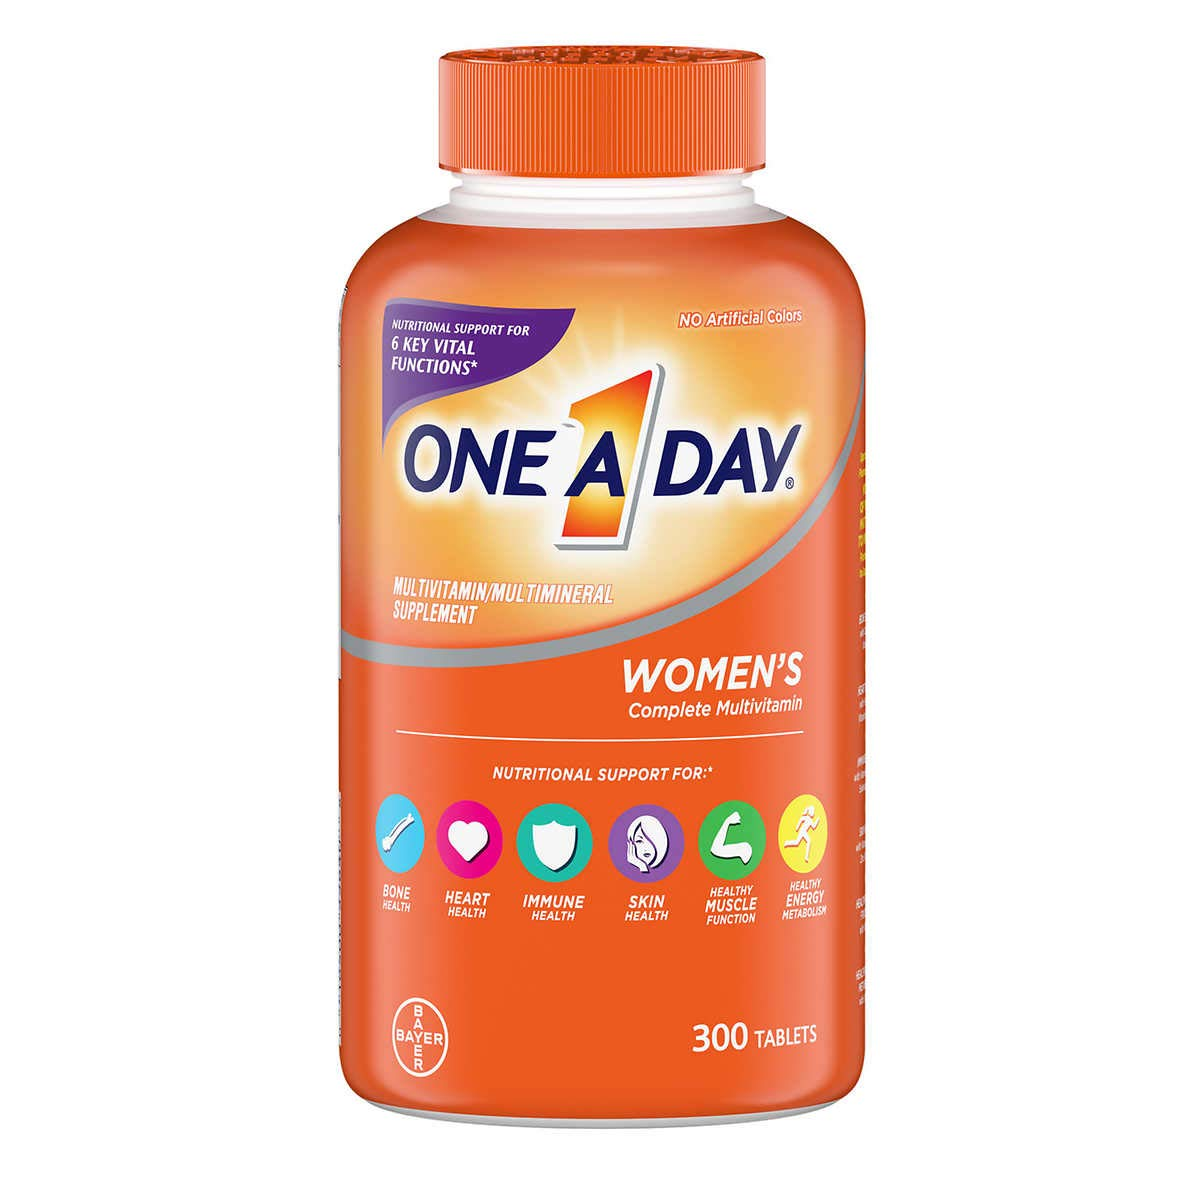 One A Day Women's Multivitamin, Supplement with Vitamins A, C, E, B1, B2, B6, B12, Biotin, Calcium and Vitamin D,